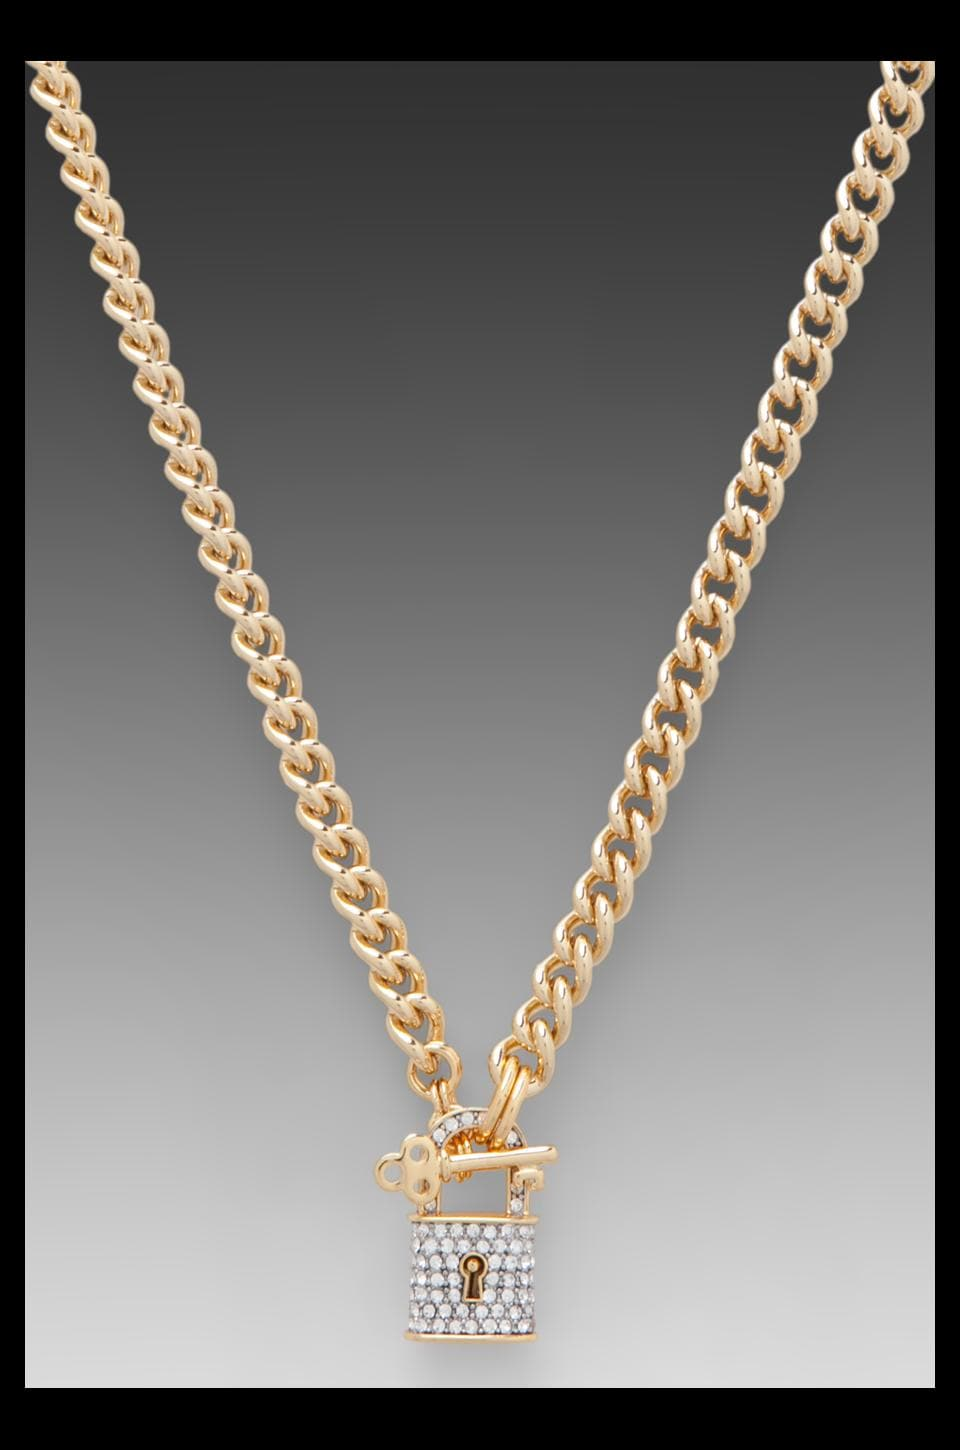 Juicy Couture Totally Secure Couture Pave Padlock Chain Necklace in Gold